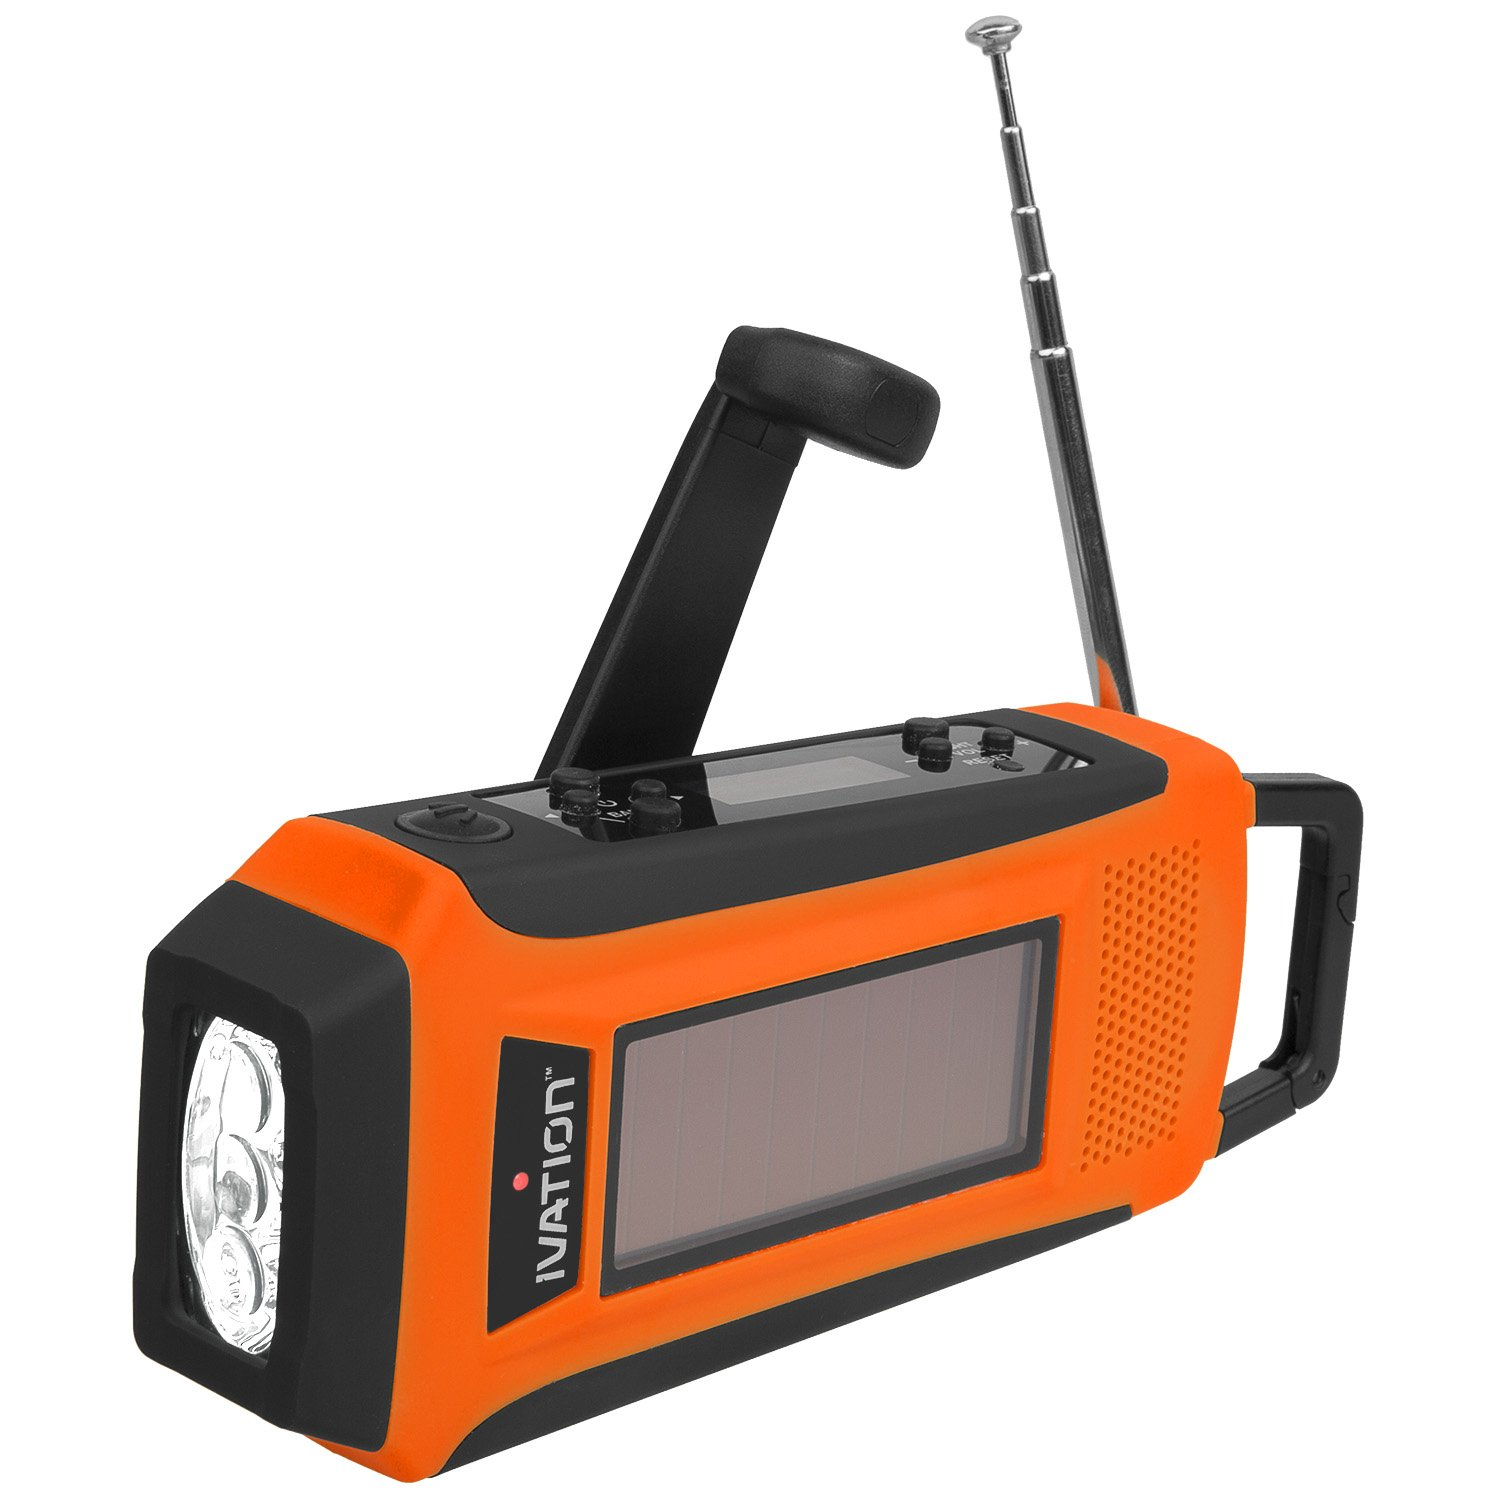 Ivation Rainproof Emergency Digital Solar & Hand Crank AM/FM/NOAA WB Radio, Smart/Cell phone Charger, Bright 3 LED Flashlight - Compact emergency Survival NOAA Alerts, and Cell phone charging – 3 Recharging options, Hand crank Dynamo Power Generator, Built-in Solar Panel, or USB Power Connection (Cables Included), Never need to replace batteries